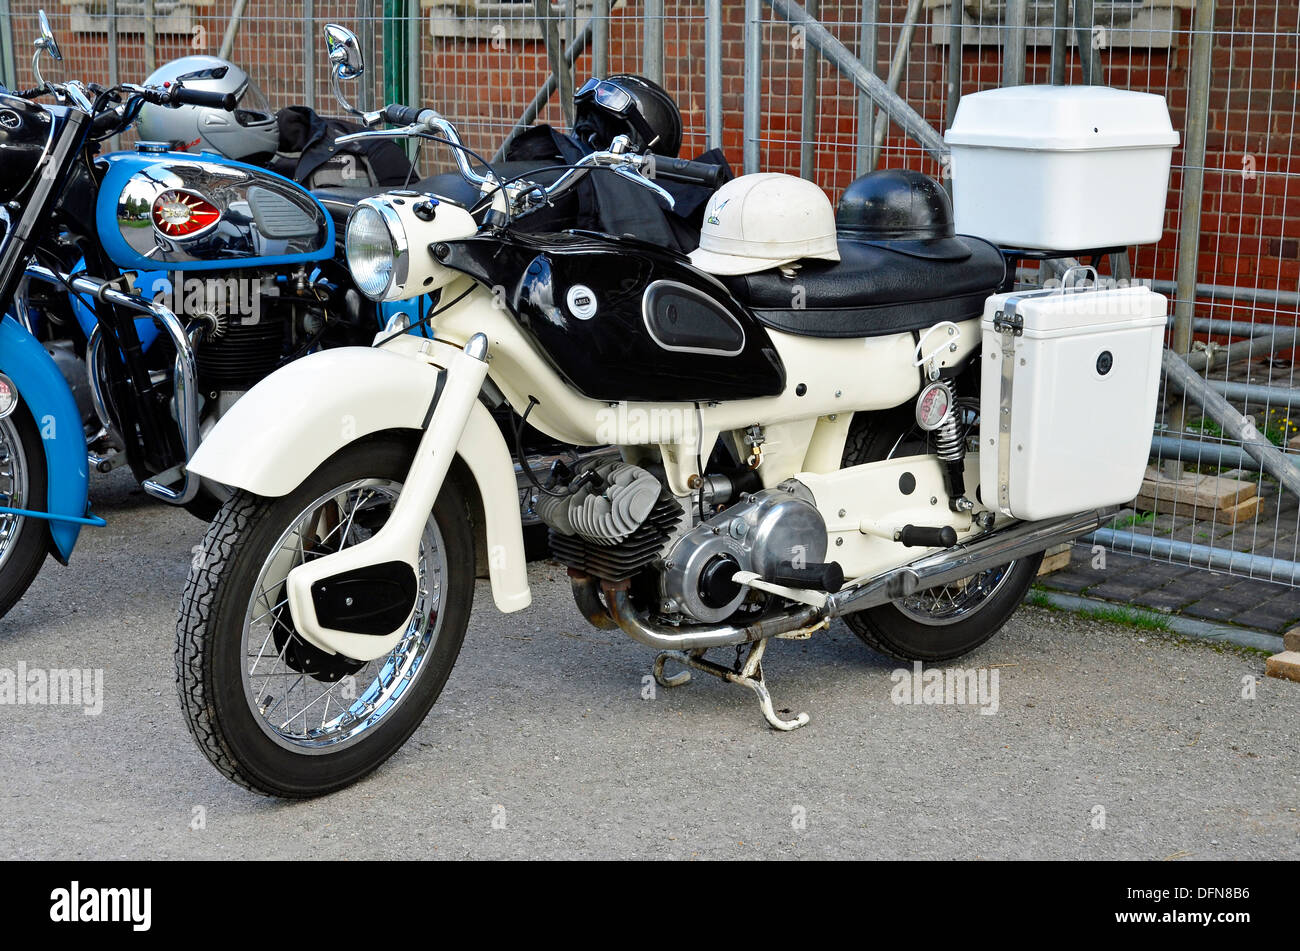 Well restored example of a British Ariel Arrow motorcycle with 250cc